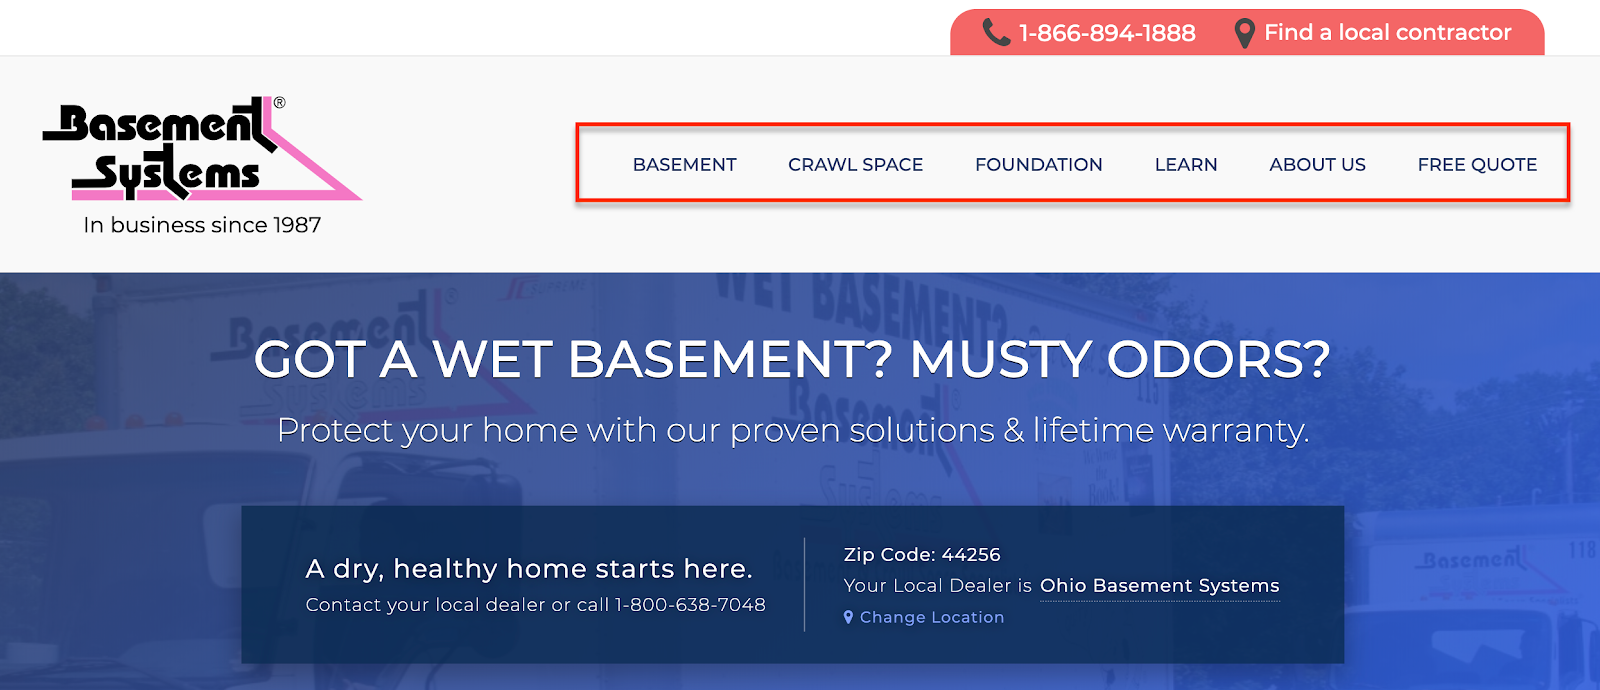 Clear navigation on a website showcases product and services.